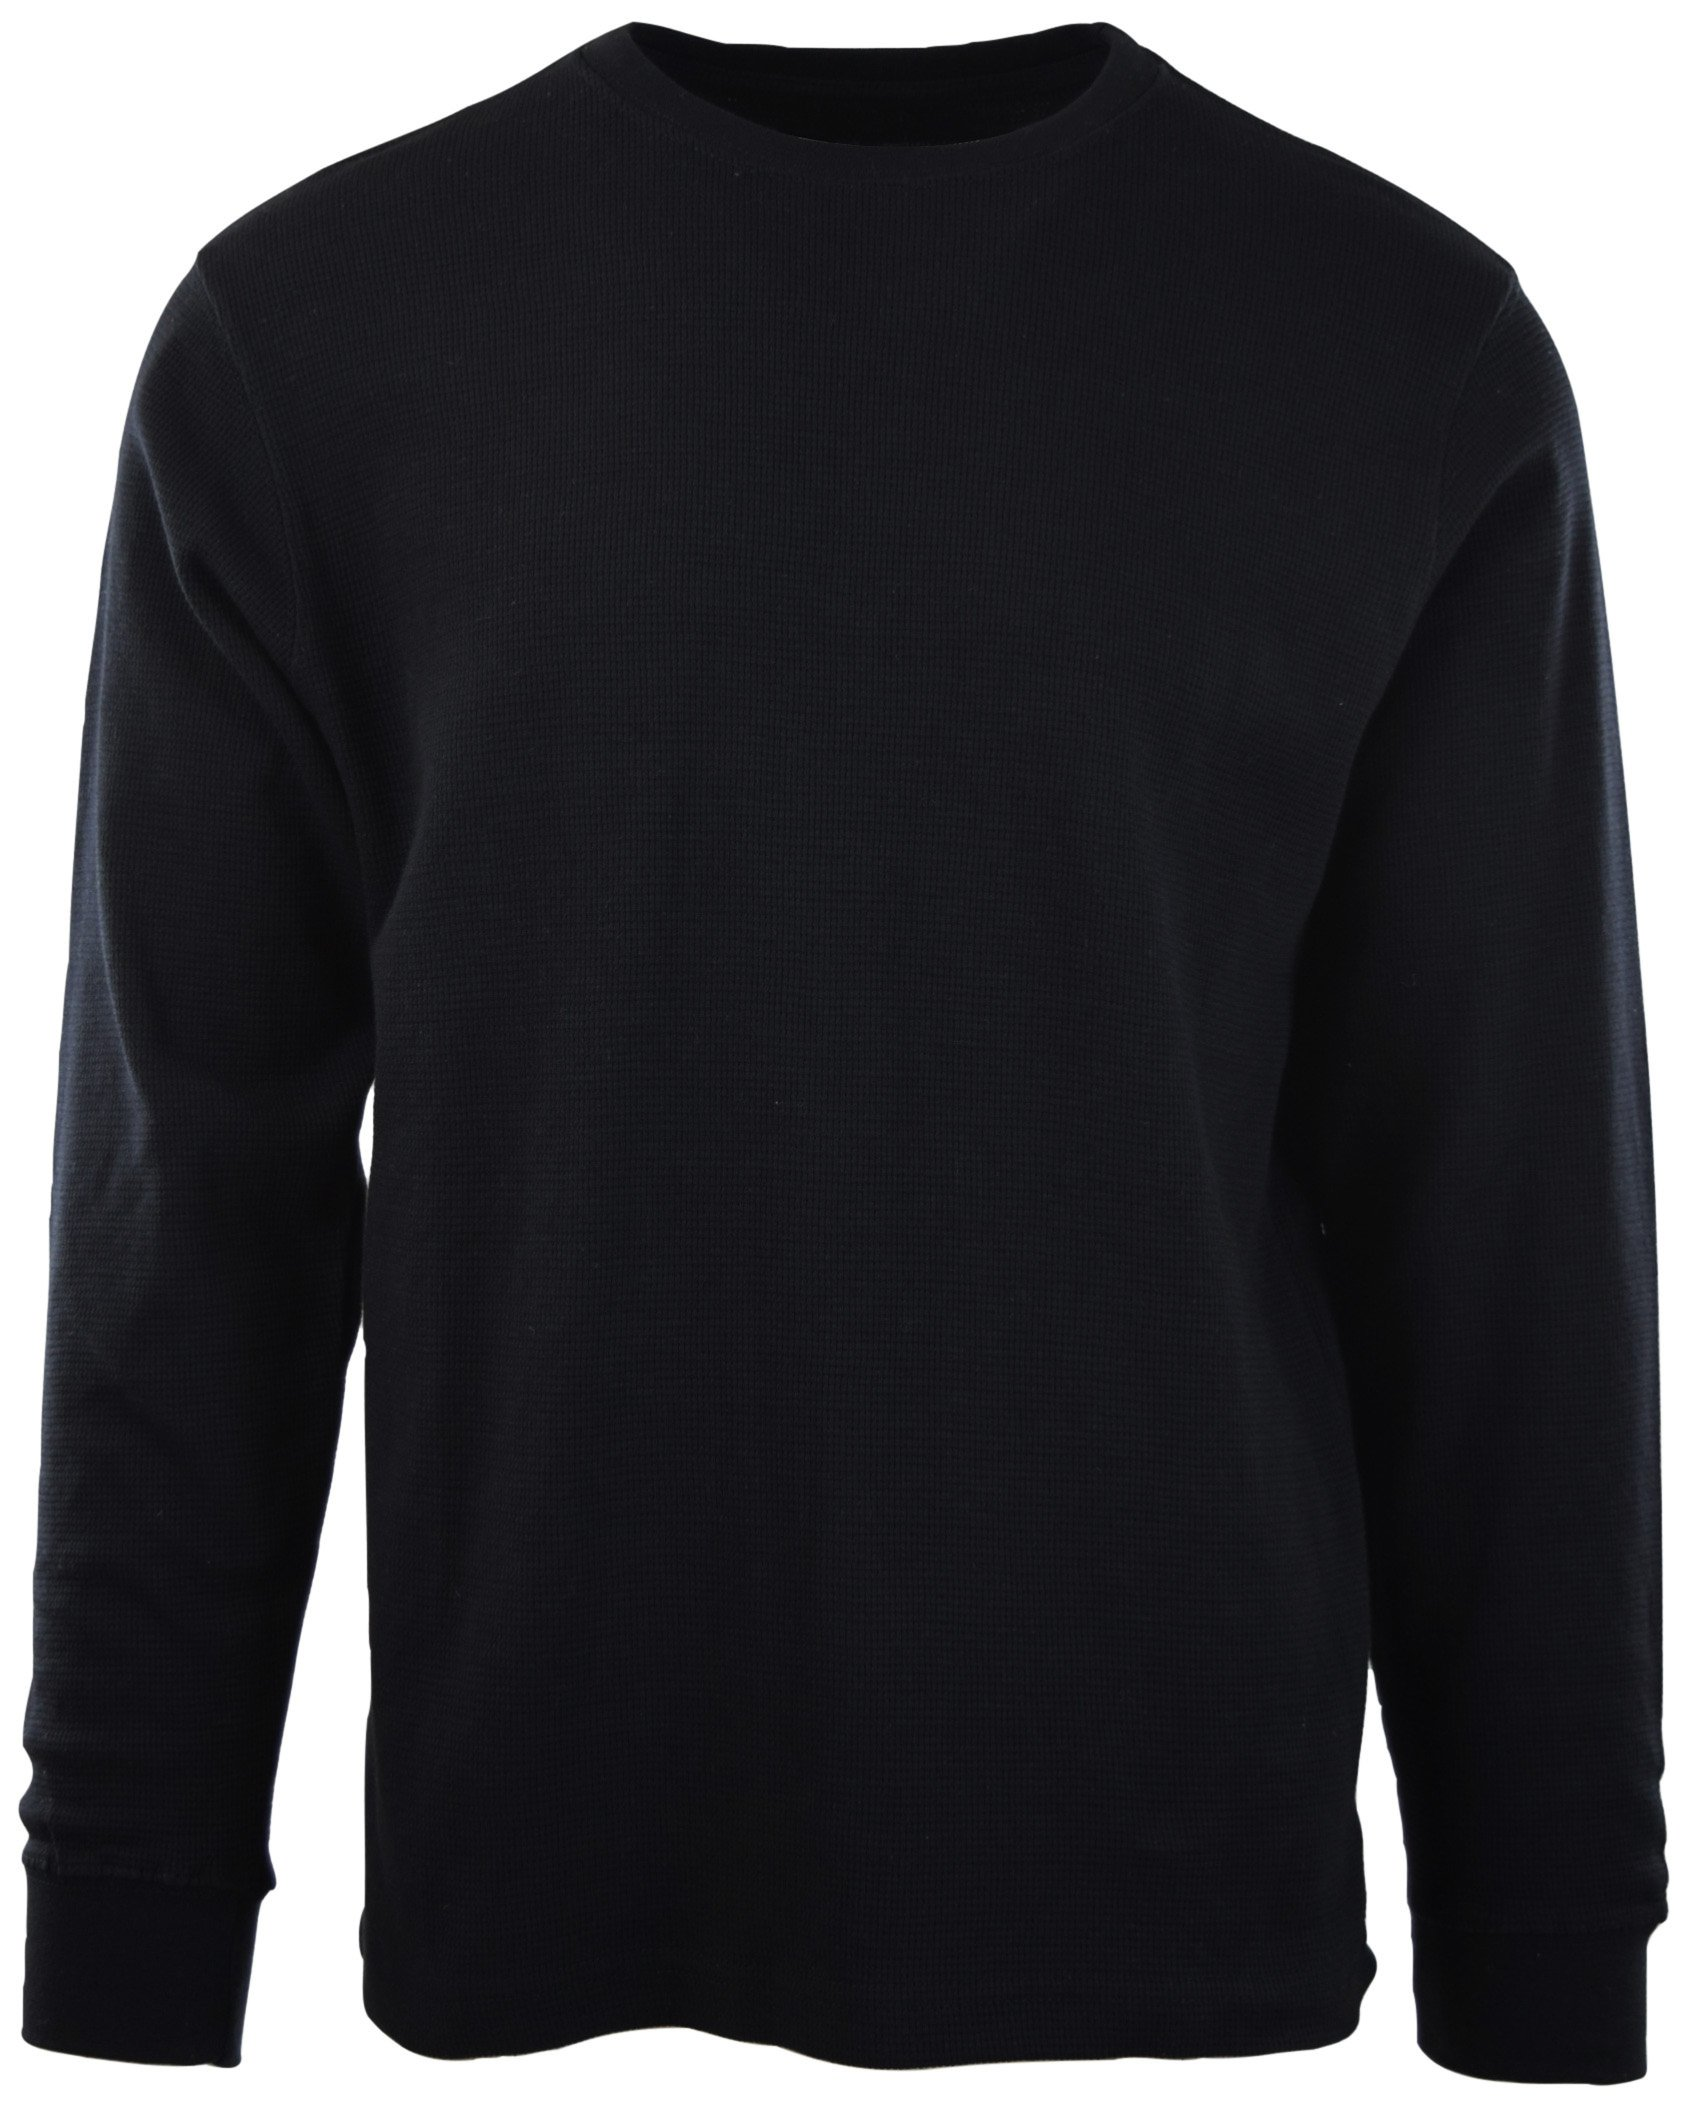 ChoiceApparel Mens Long Sleeve Thermal Waffle Pattern Crew Neck Shirts (L, 1802-BLACK)